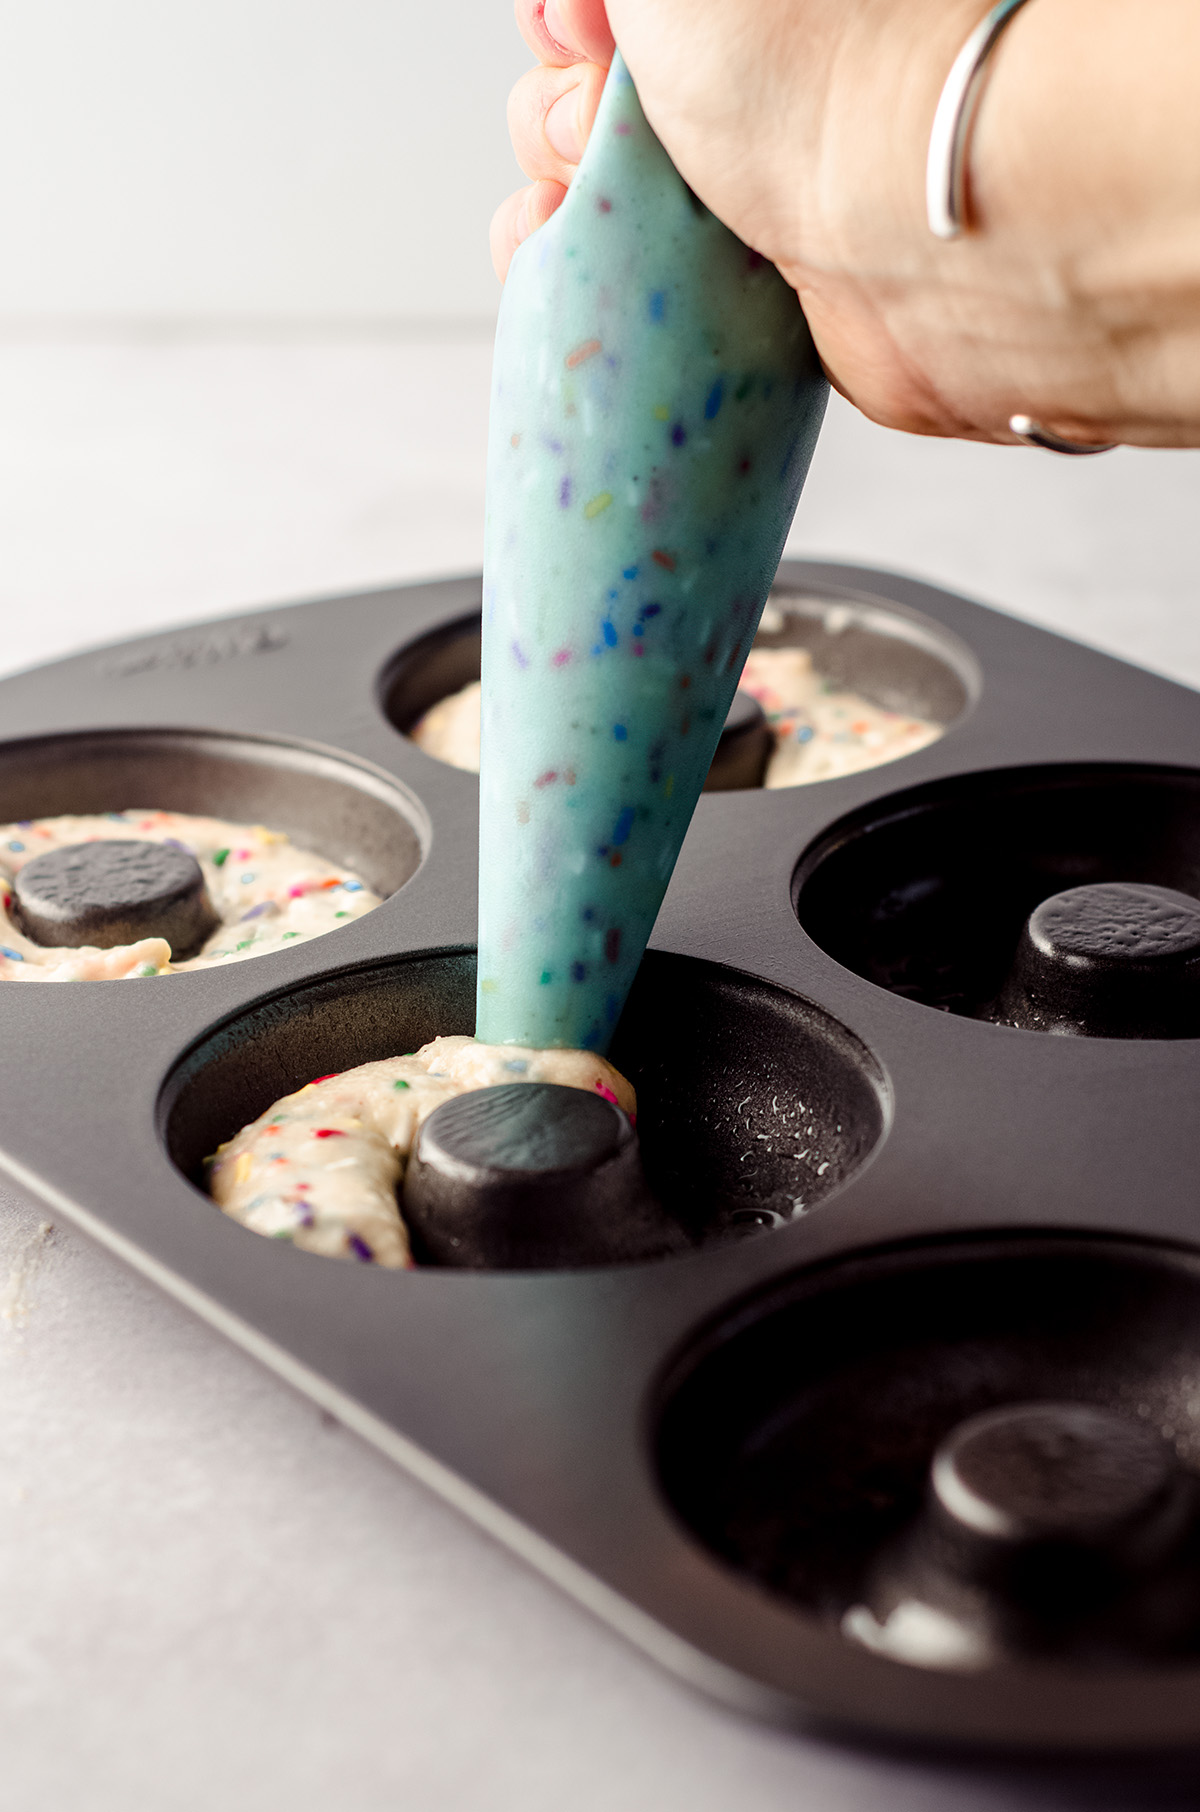 filling a donut pan with funfetti donut batter with a piping bag